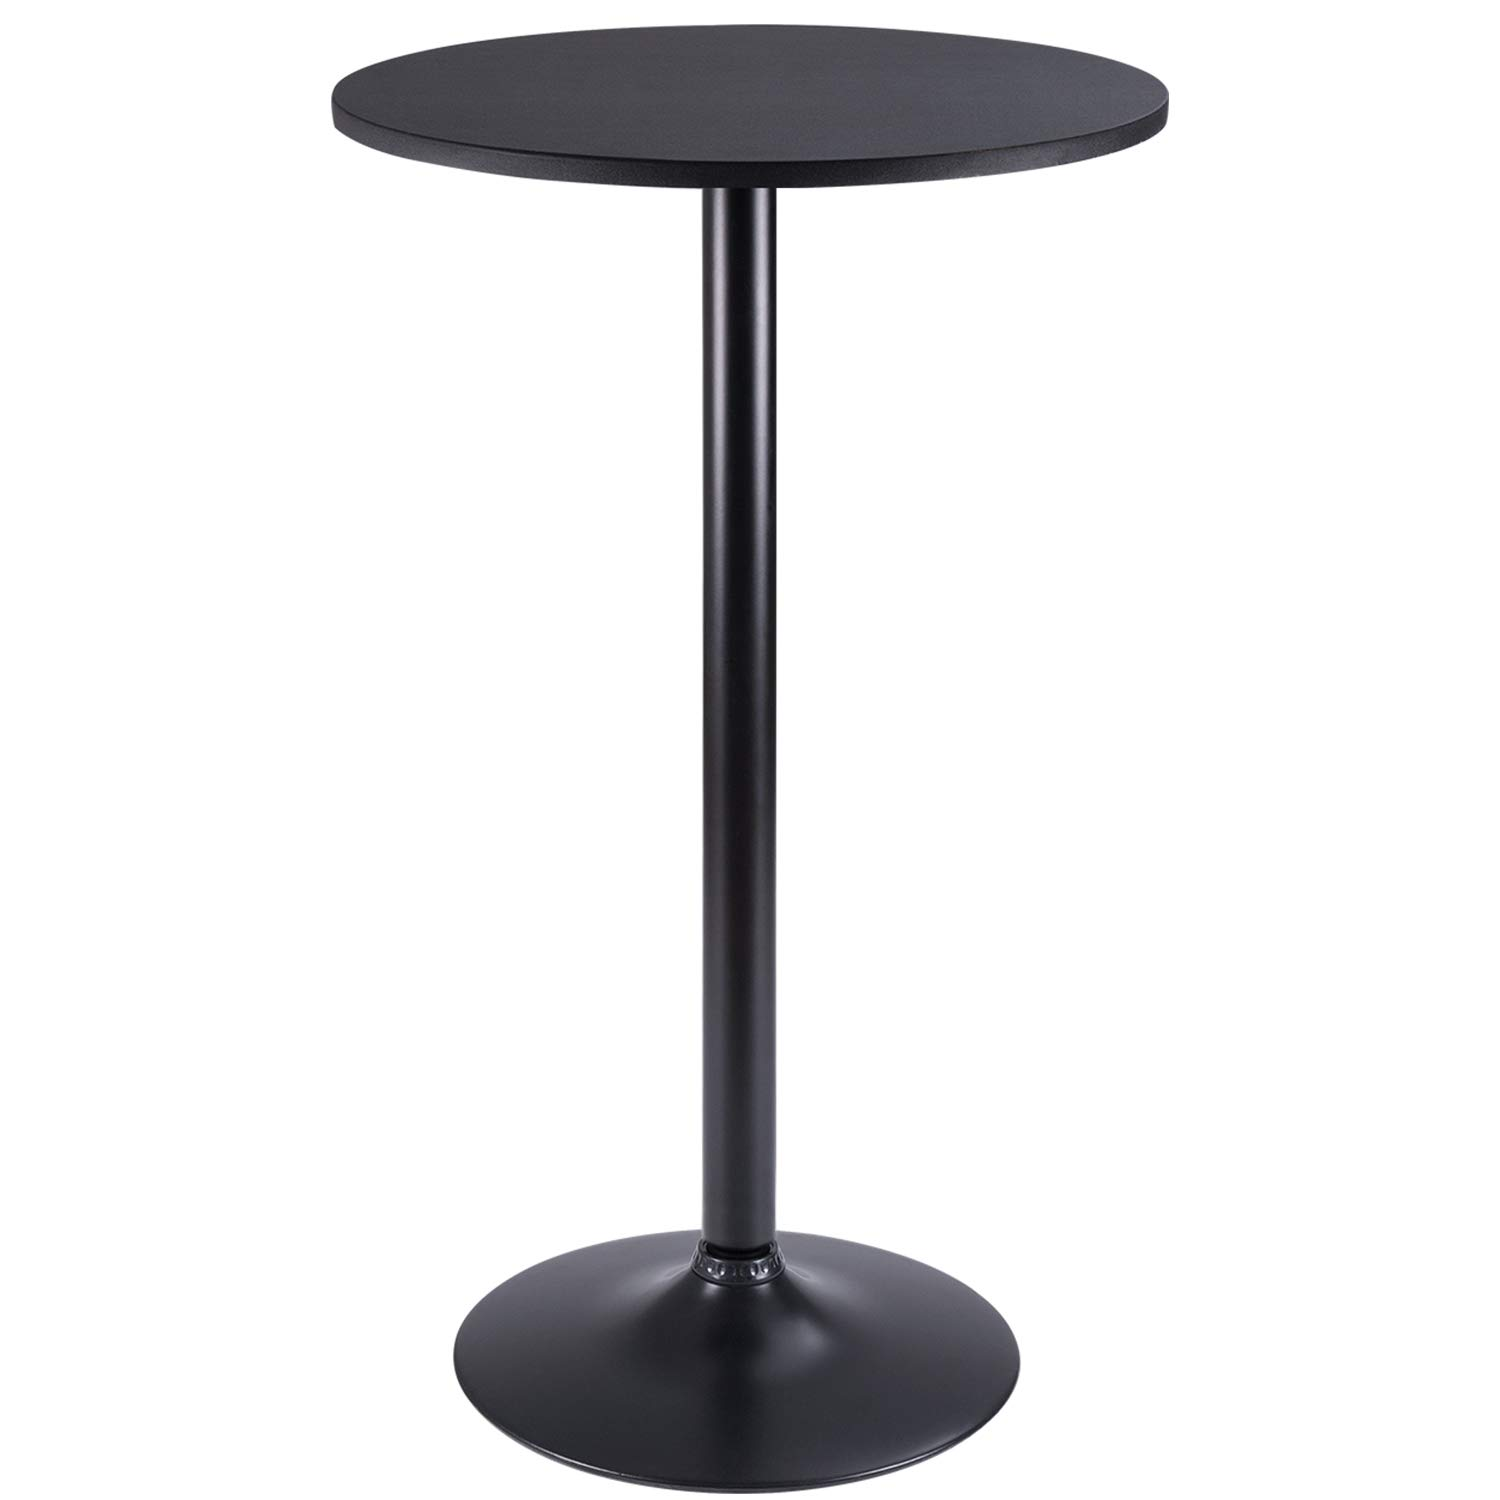 Furmax Bistro Pub Table Round Bar Height Cocktail Table Metal Base MDF Top Obsidian Table with Black Leg 23.8-Inch Top, 39.5-Inch Height (Black) by Furmax